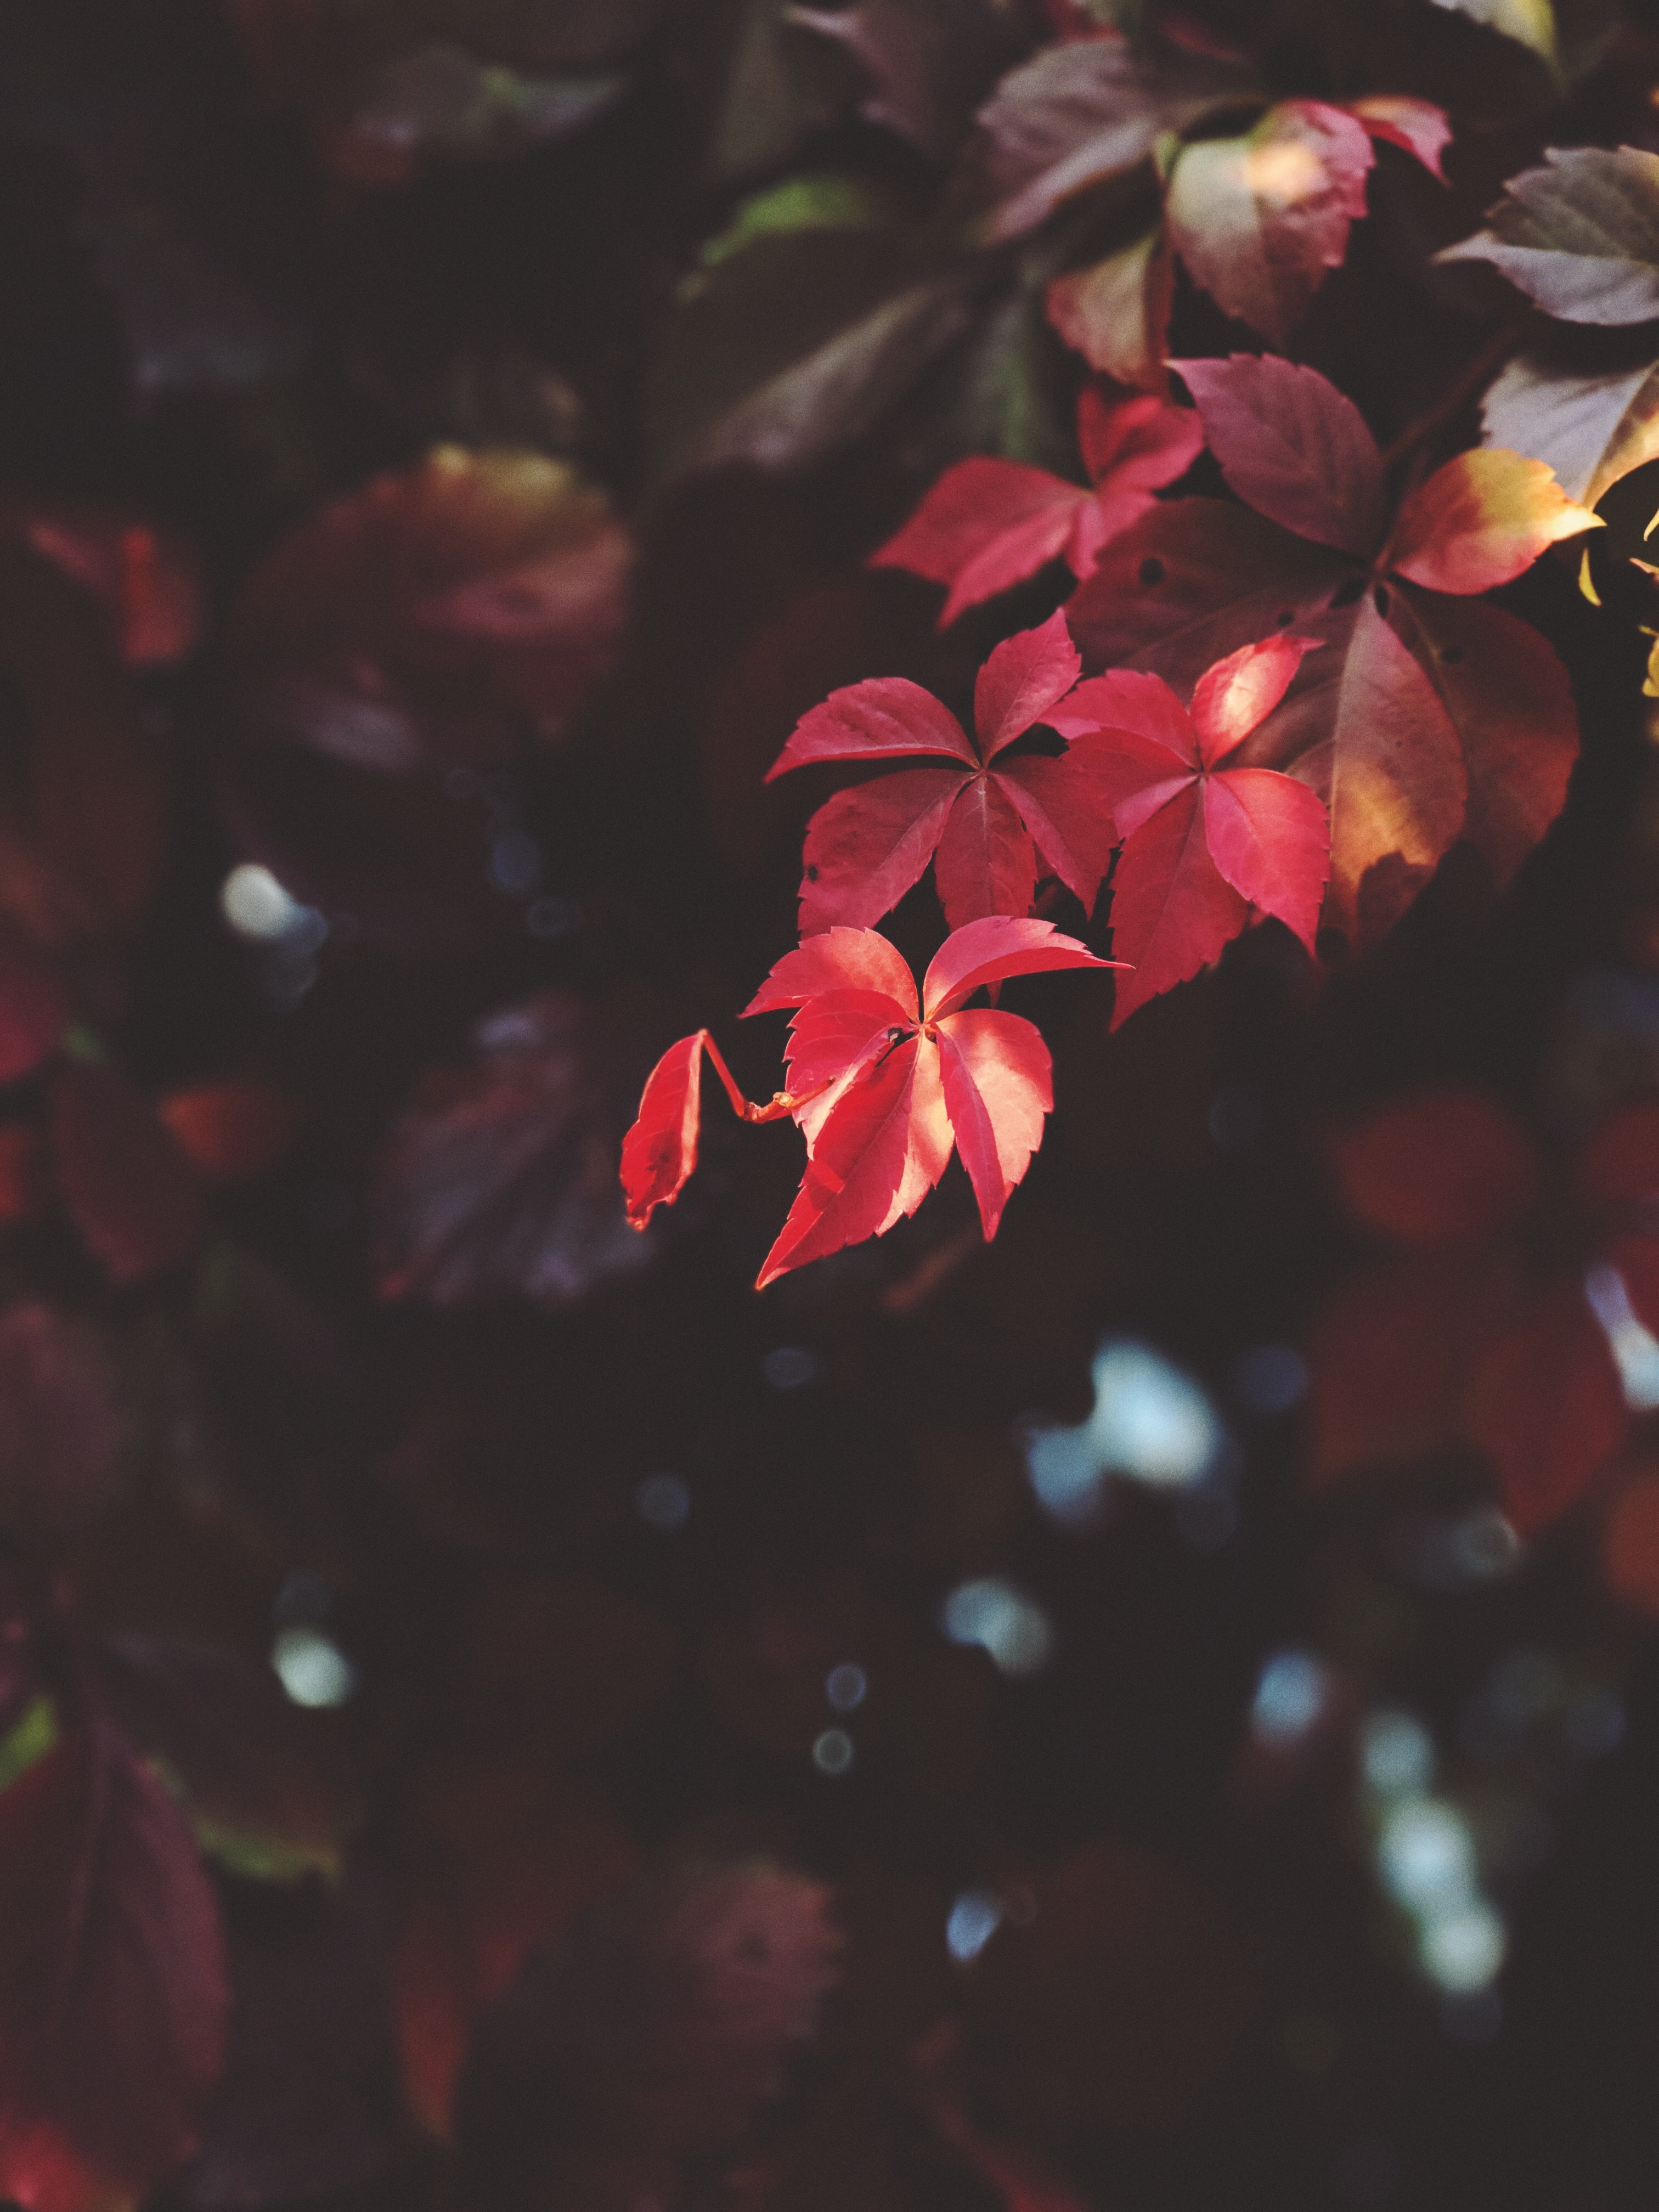 red leaves in shallow focus shot